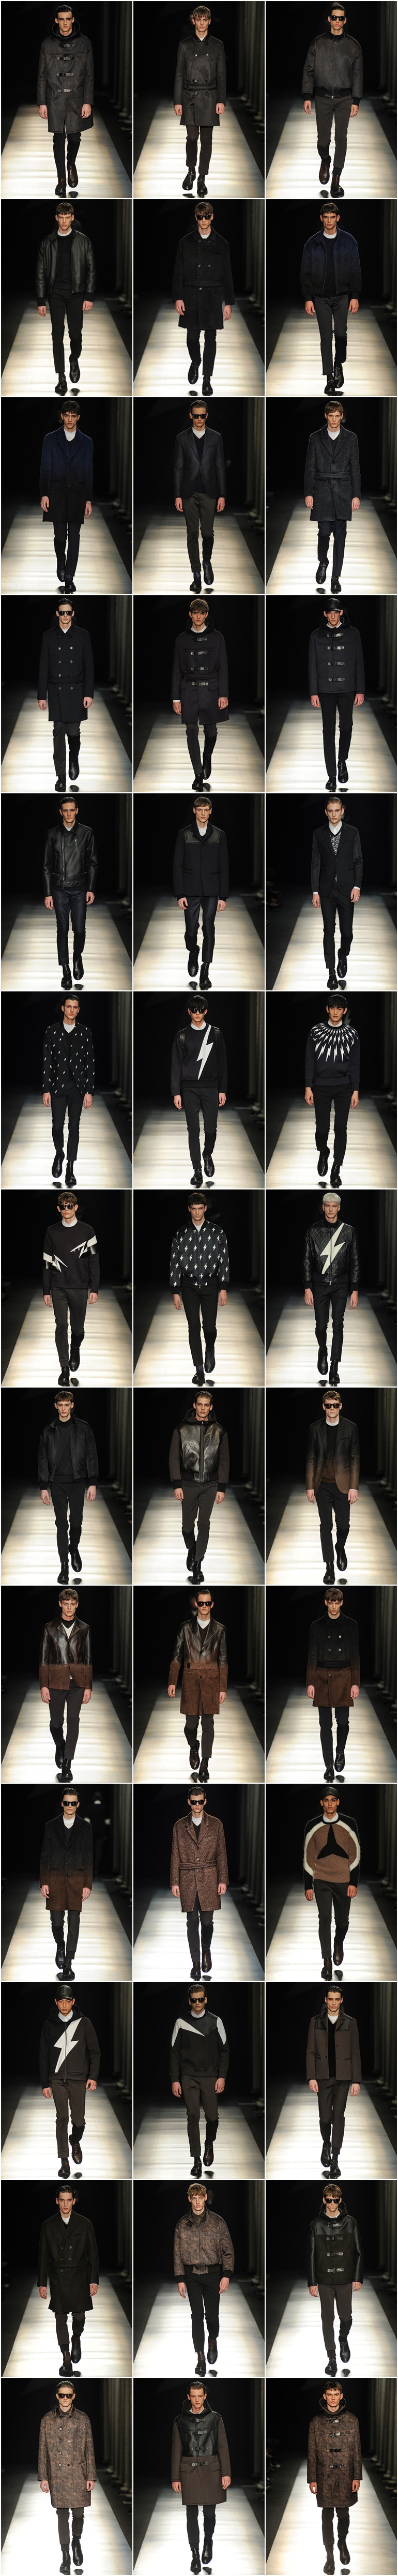 neil-barrett-fall-winter-2014-fashion4addicts.com